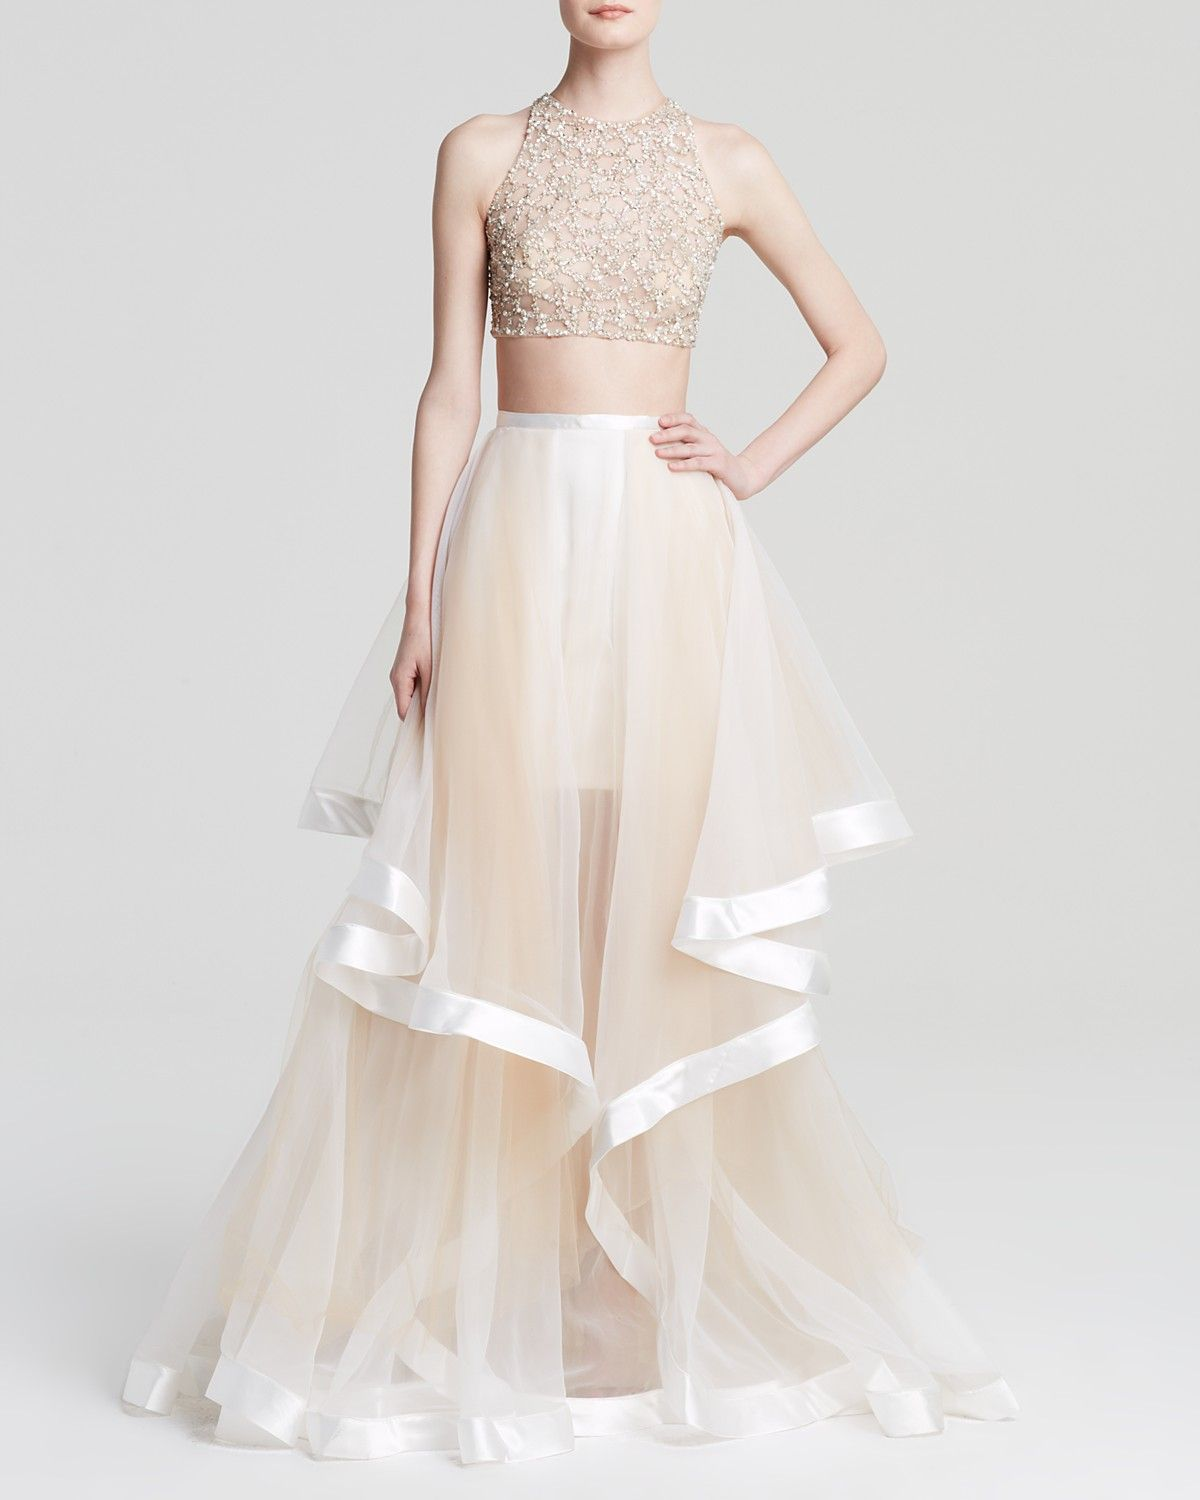 a2276a7ec13 Terani Couture Gown - Beaded Crop Top & Tiered Sheer Tulle Skirt Two-Piece  | Bloomingdale's